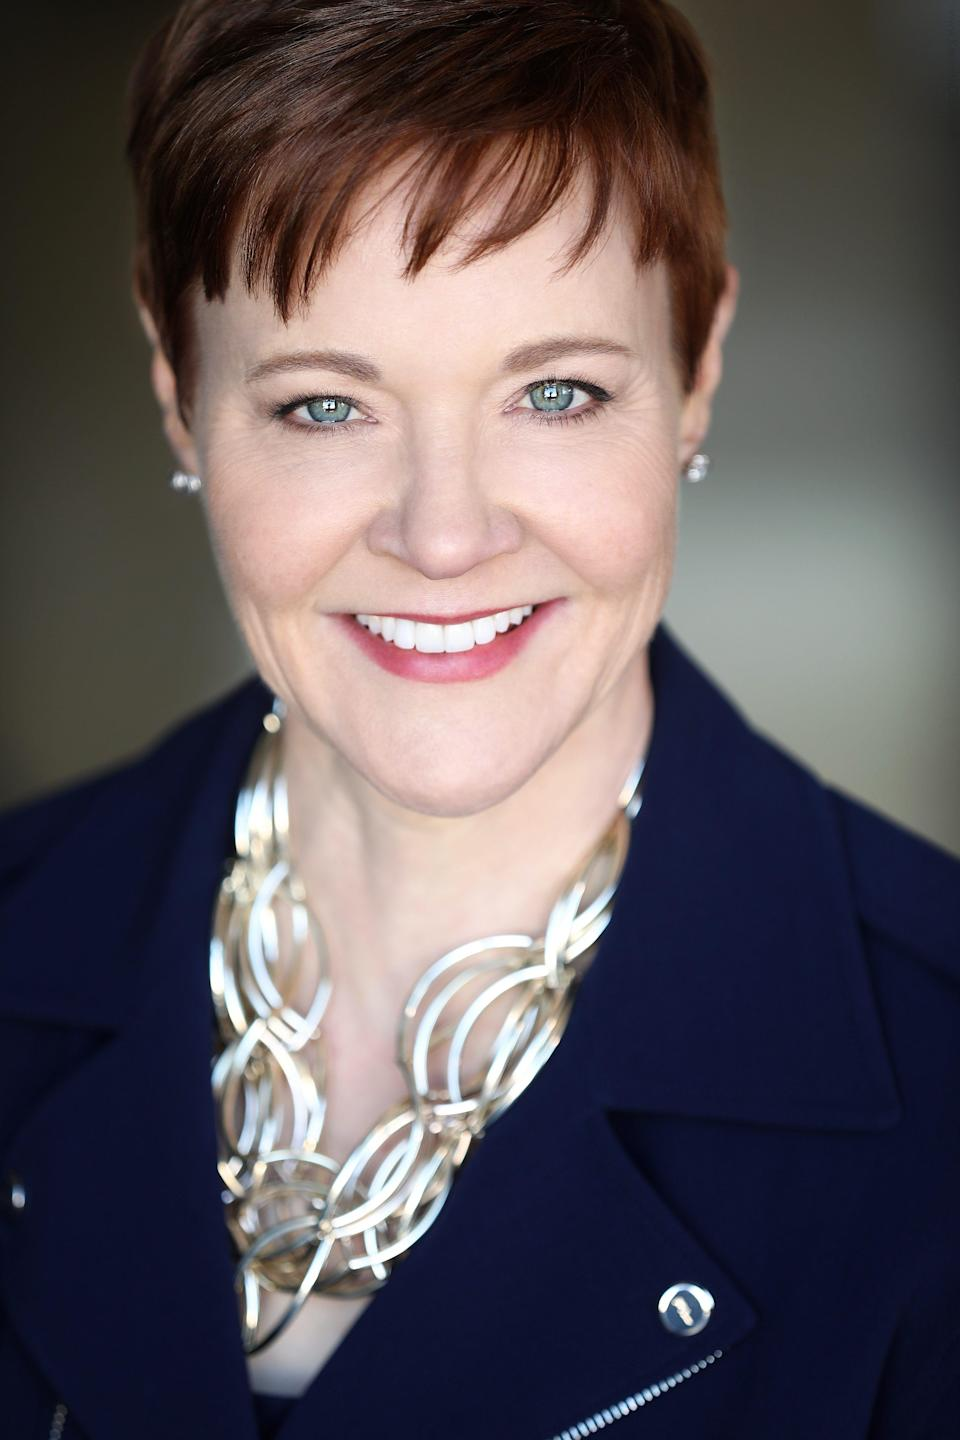 Rachel Moore, president and CEO of The Music Center in Los Angeles